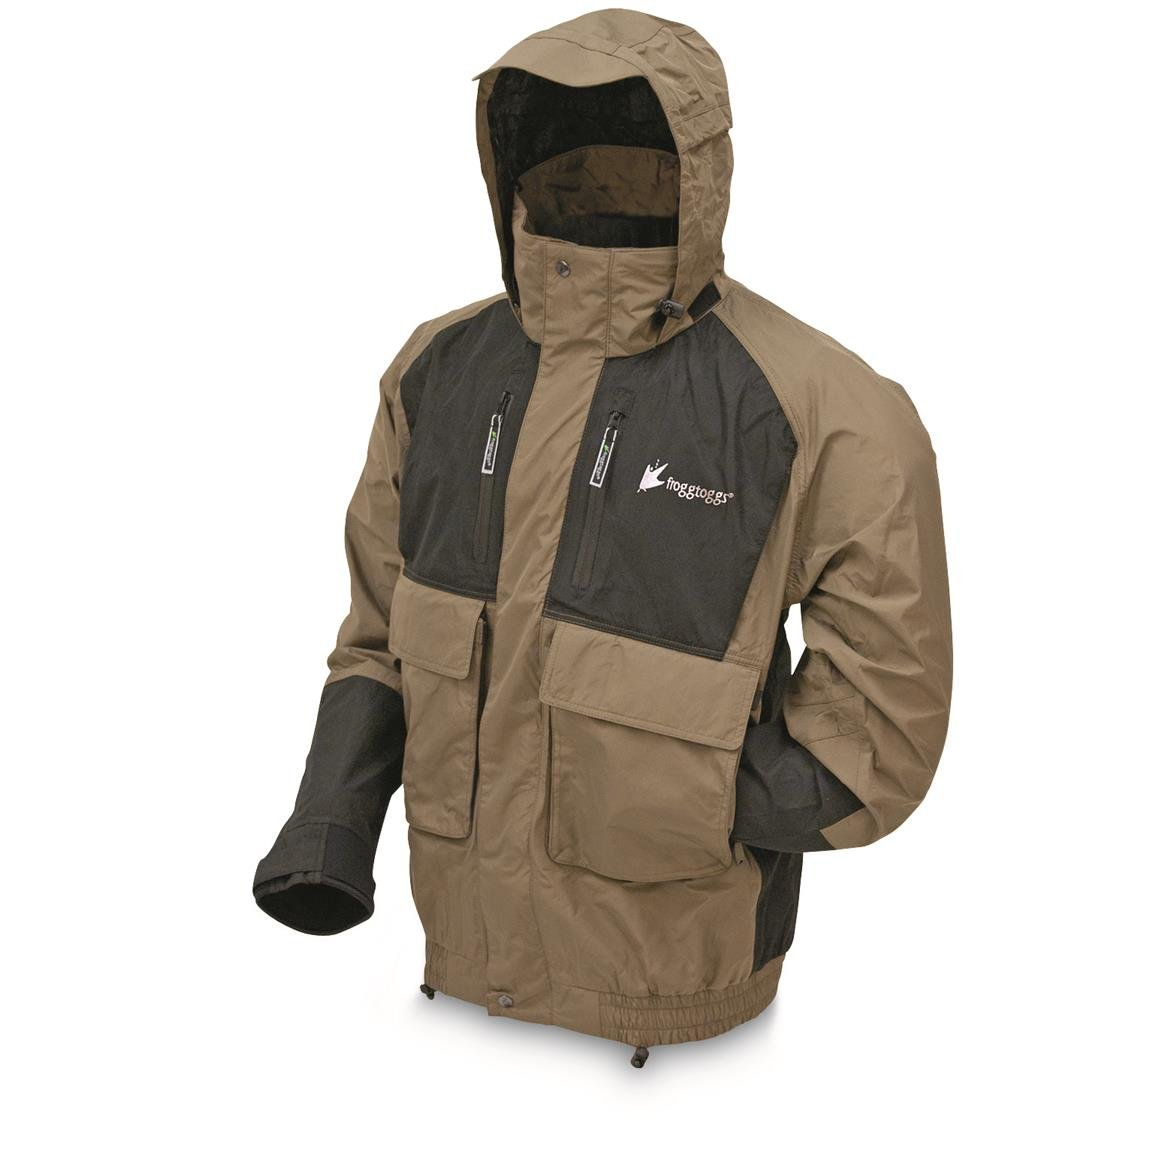 Frogg Toggs Toadz Firebelly Jacket Frogg Toggs Apparel NT6201-105XL